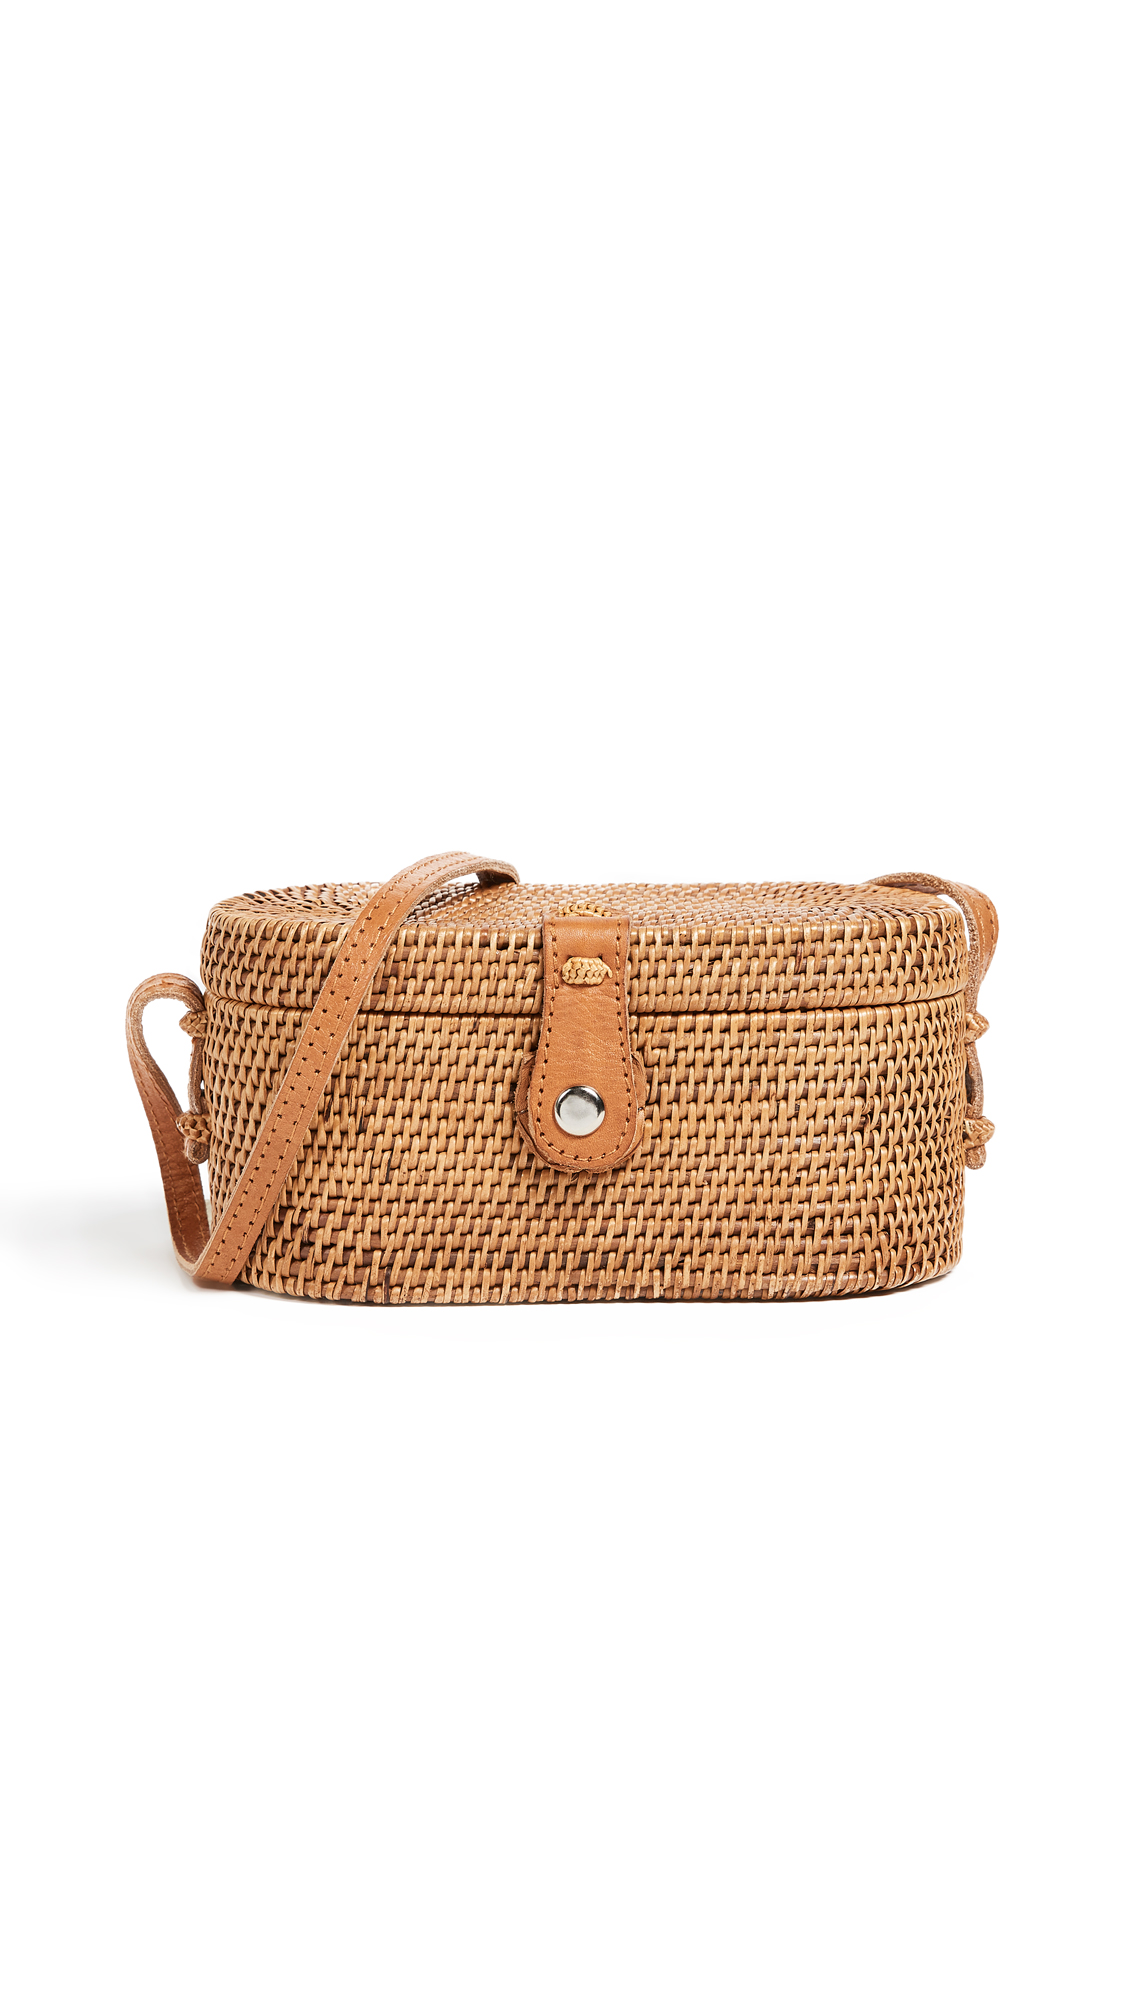 FAITHFULL THE BRAND Camila Cross Body Box Bag - Natural